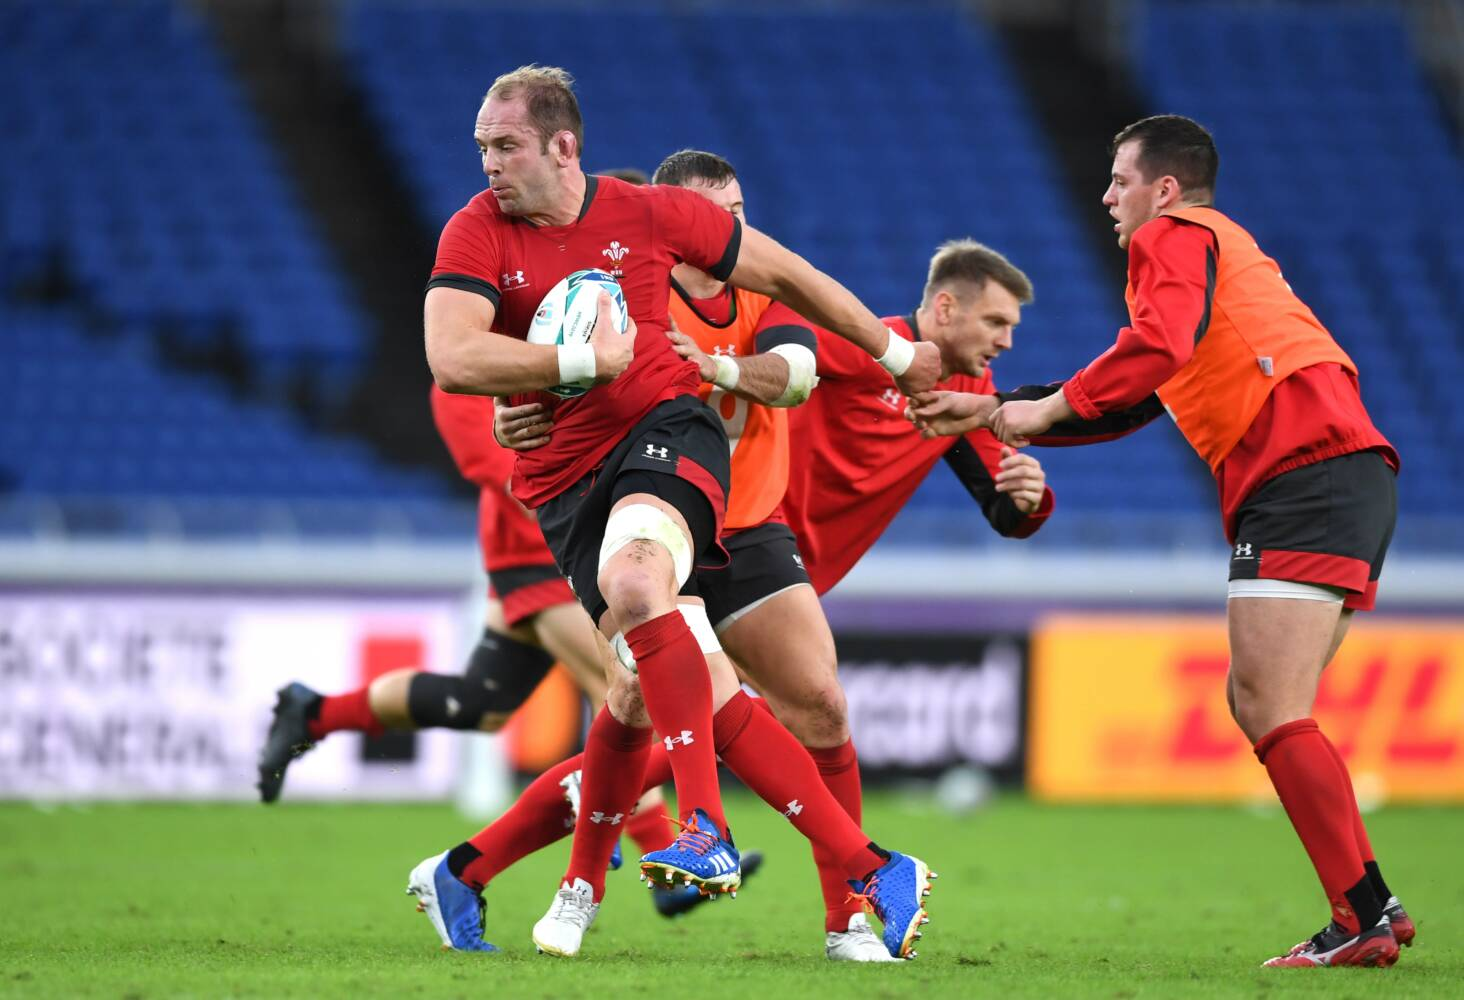 AWJ shortlisted Player of the Year